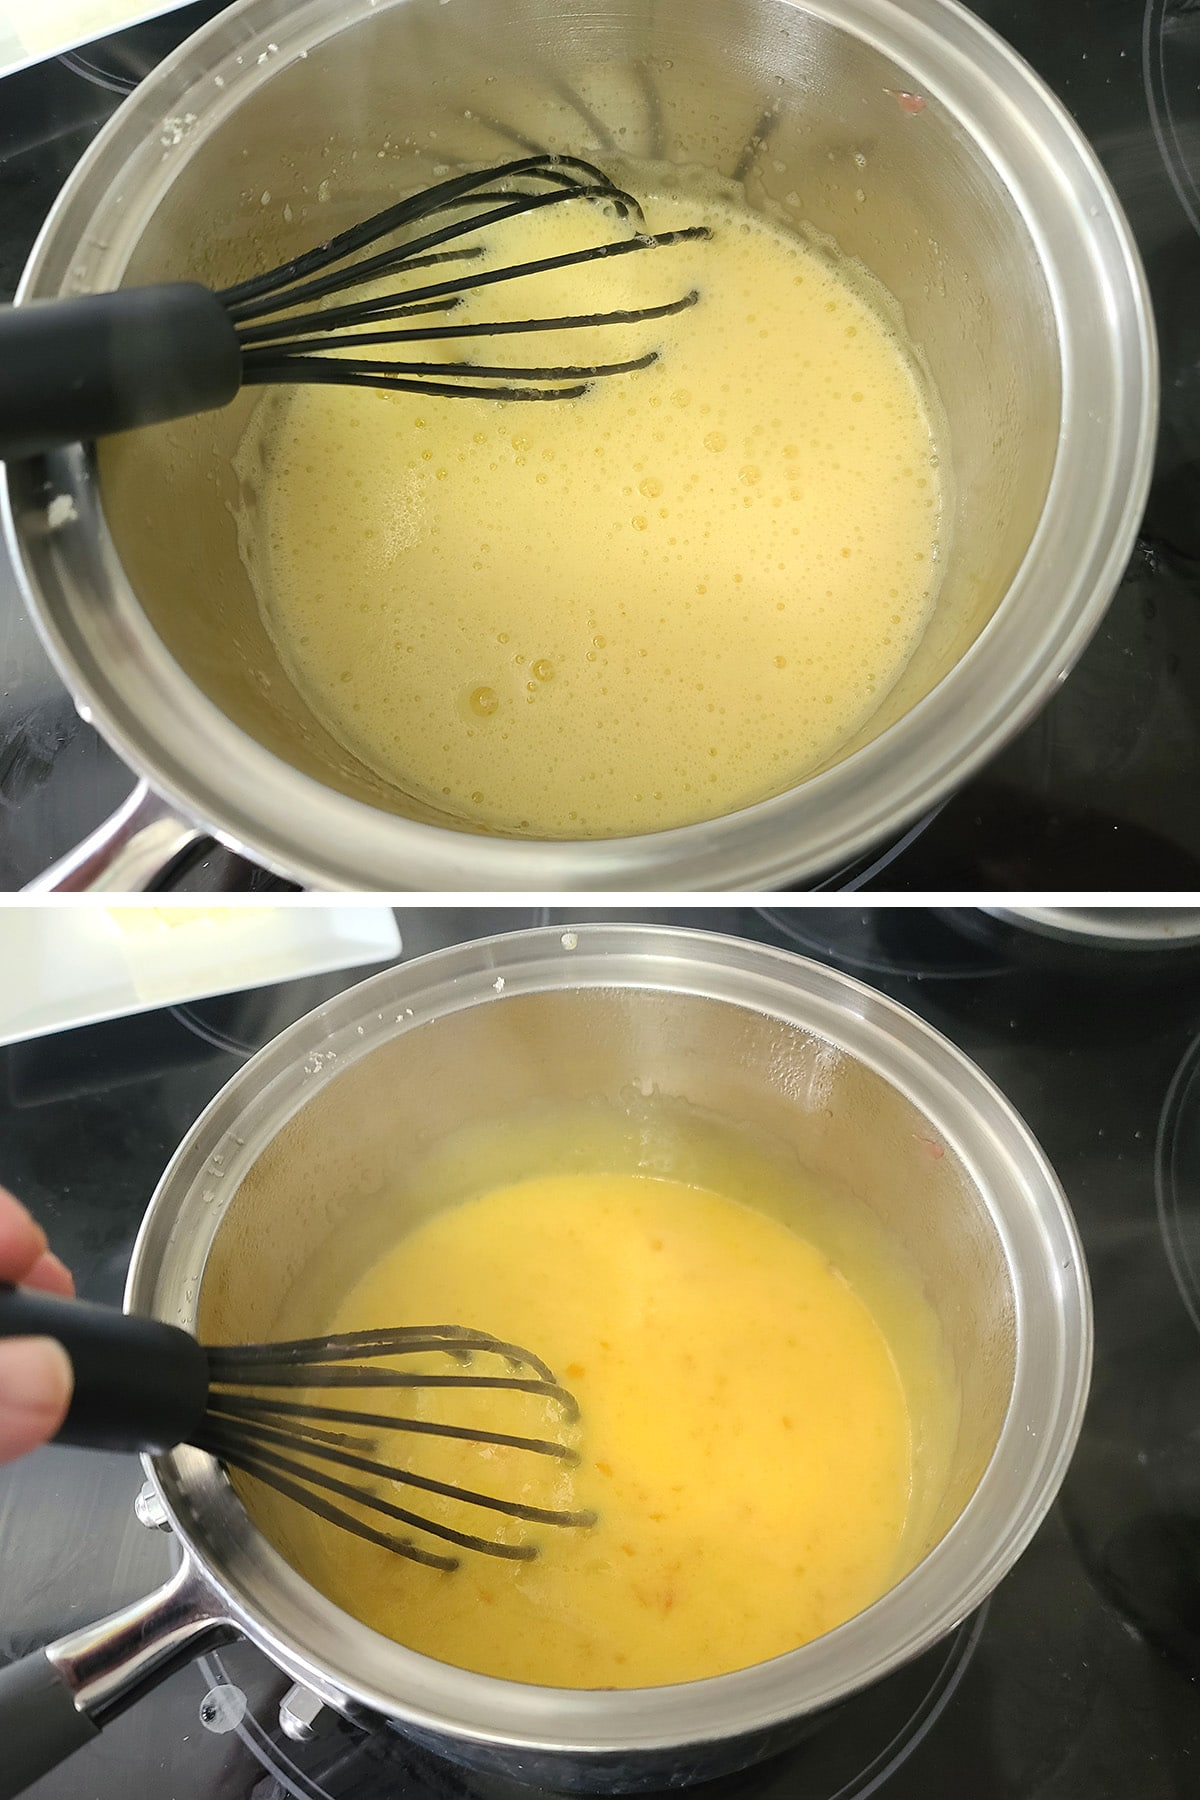 Grapefruit curd being cooked in a pot.